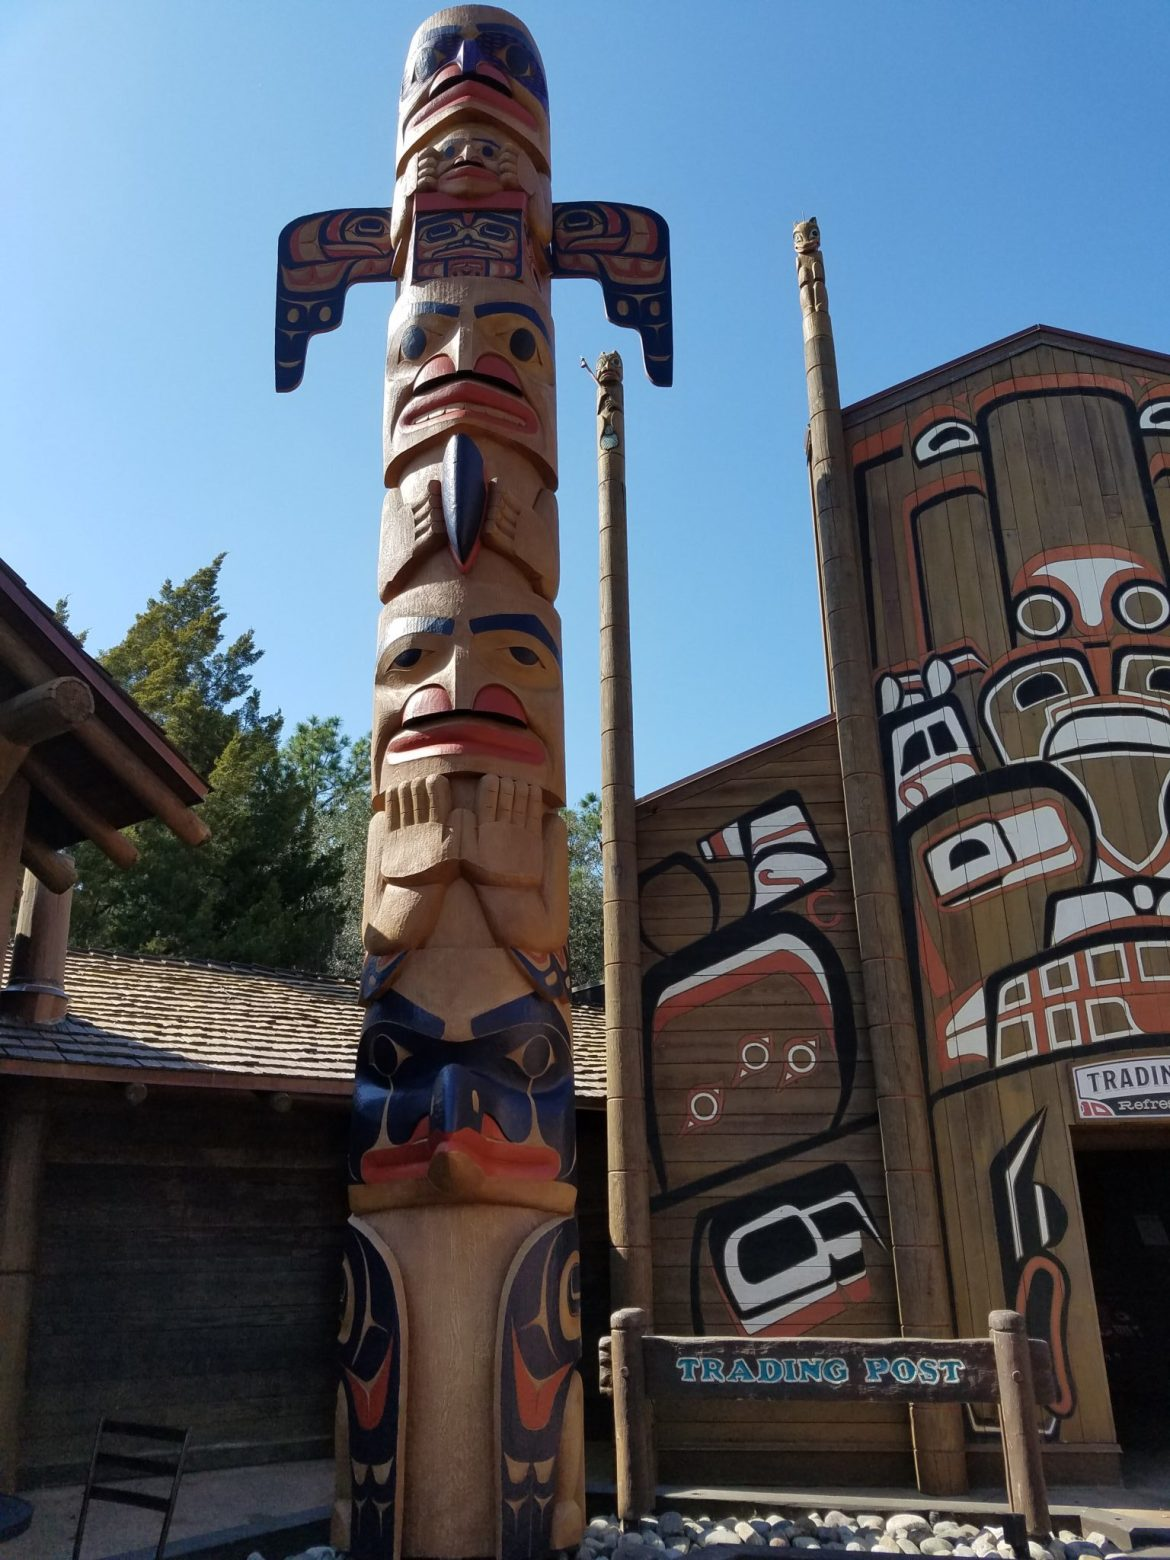 Epcot's Canada Pavilion Adds Two New Totem Poles and Refurbishes Original